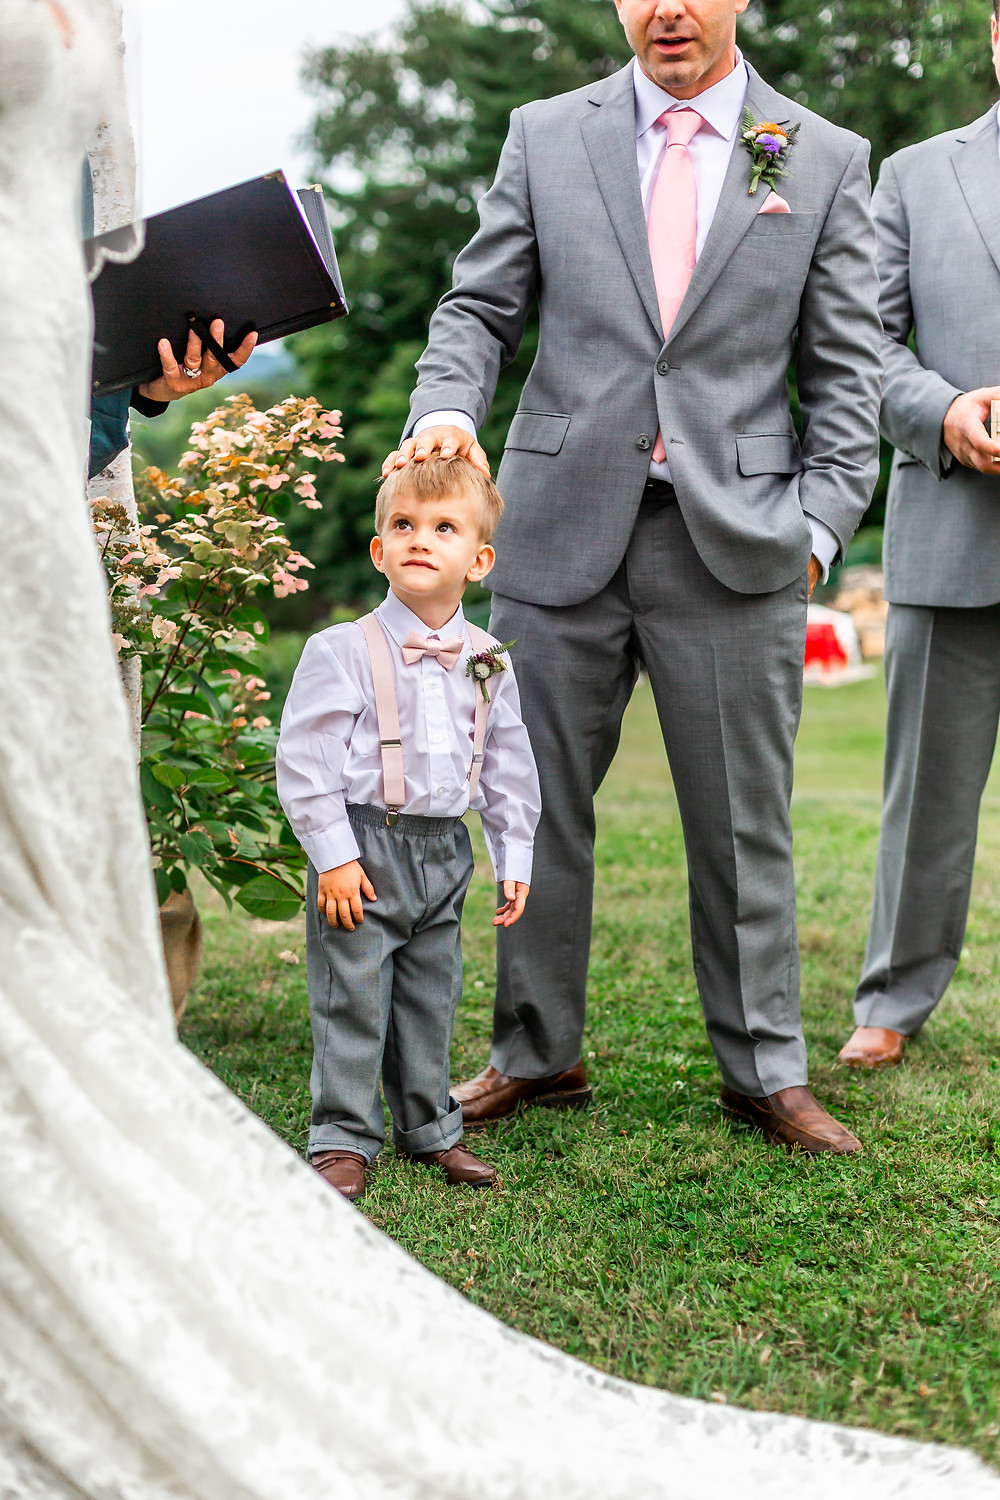 Wells Maine Wedding Photographer specializing in natural, intimate weddings.